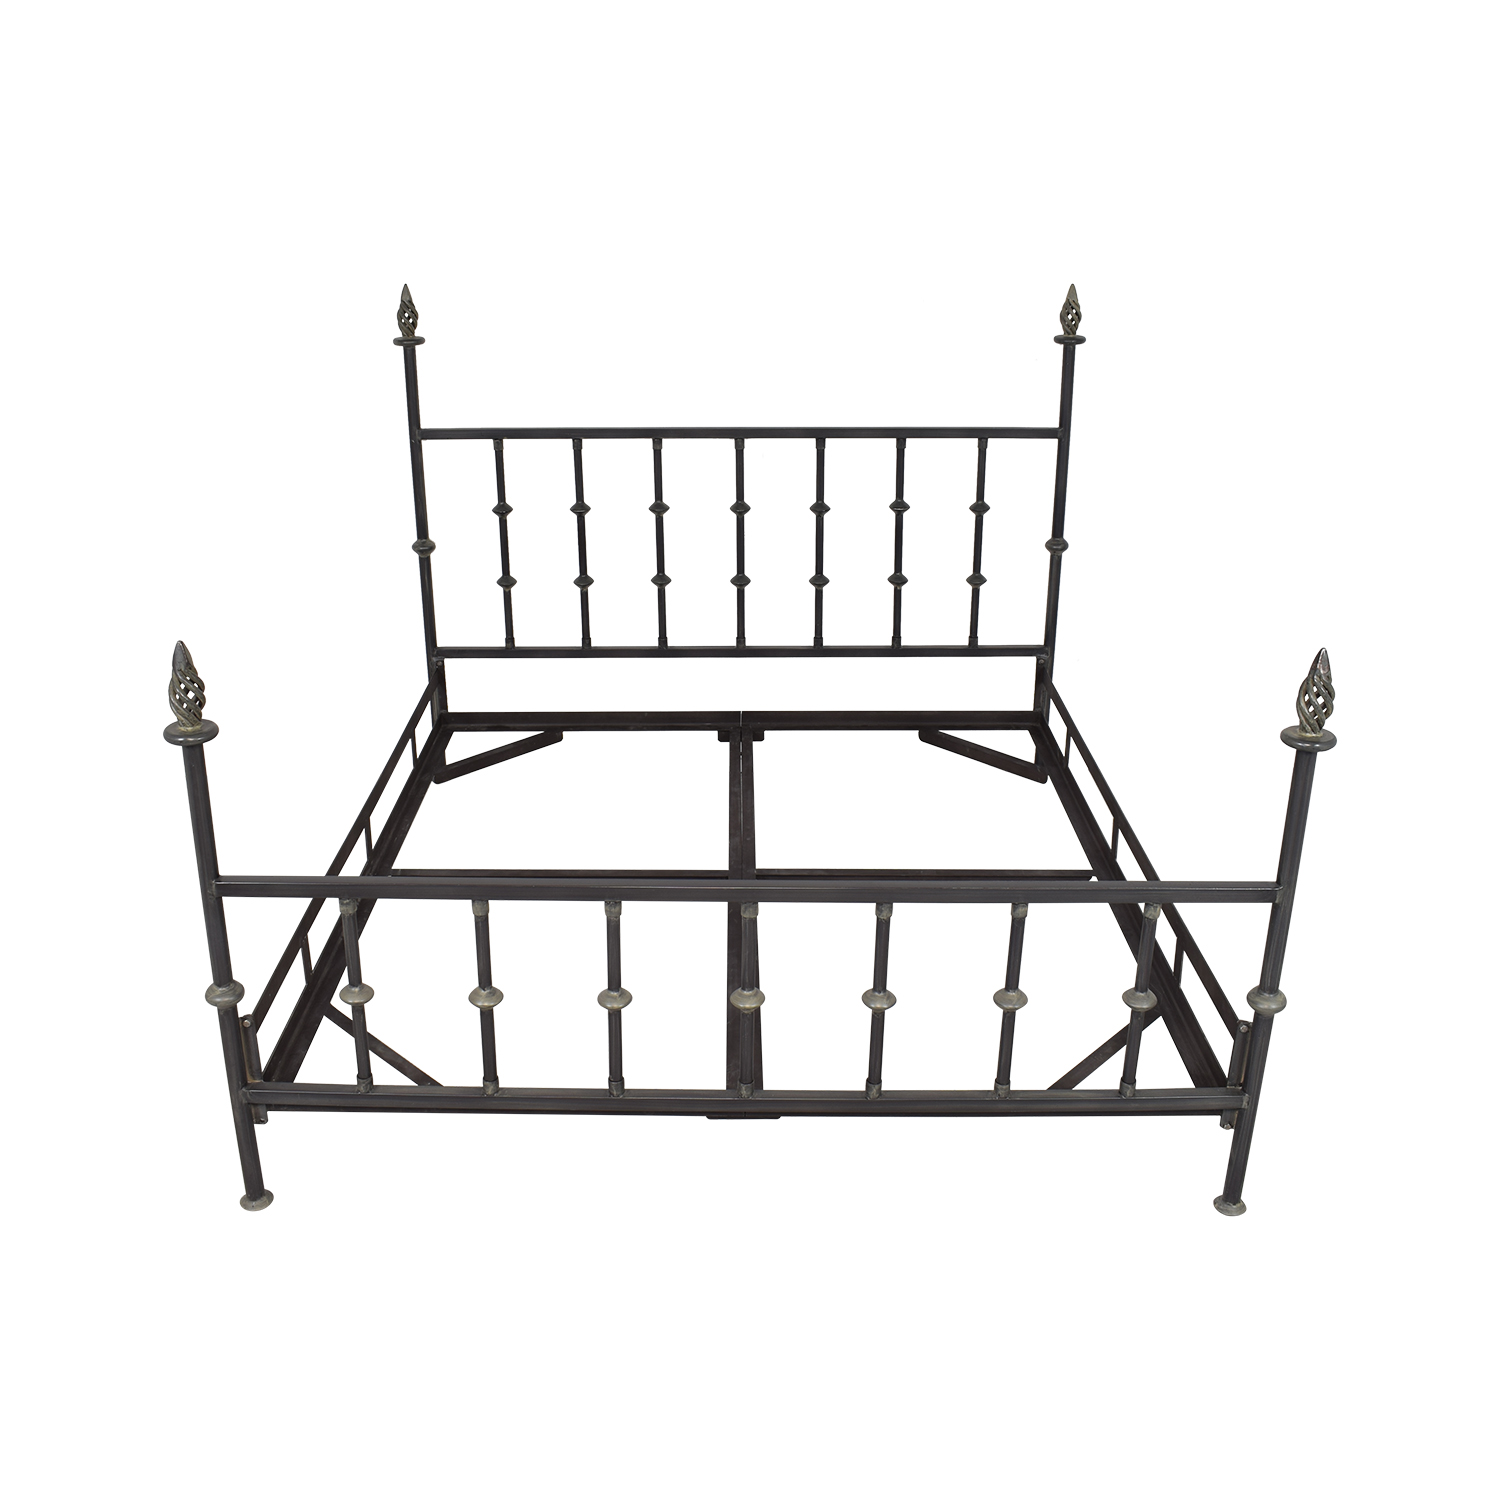 King Bed Frame with Spiral Finials second hand